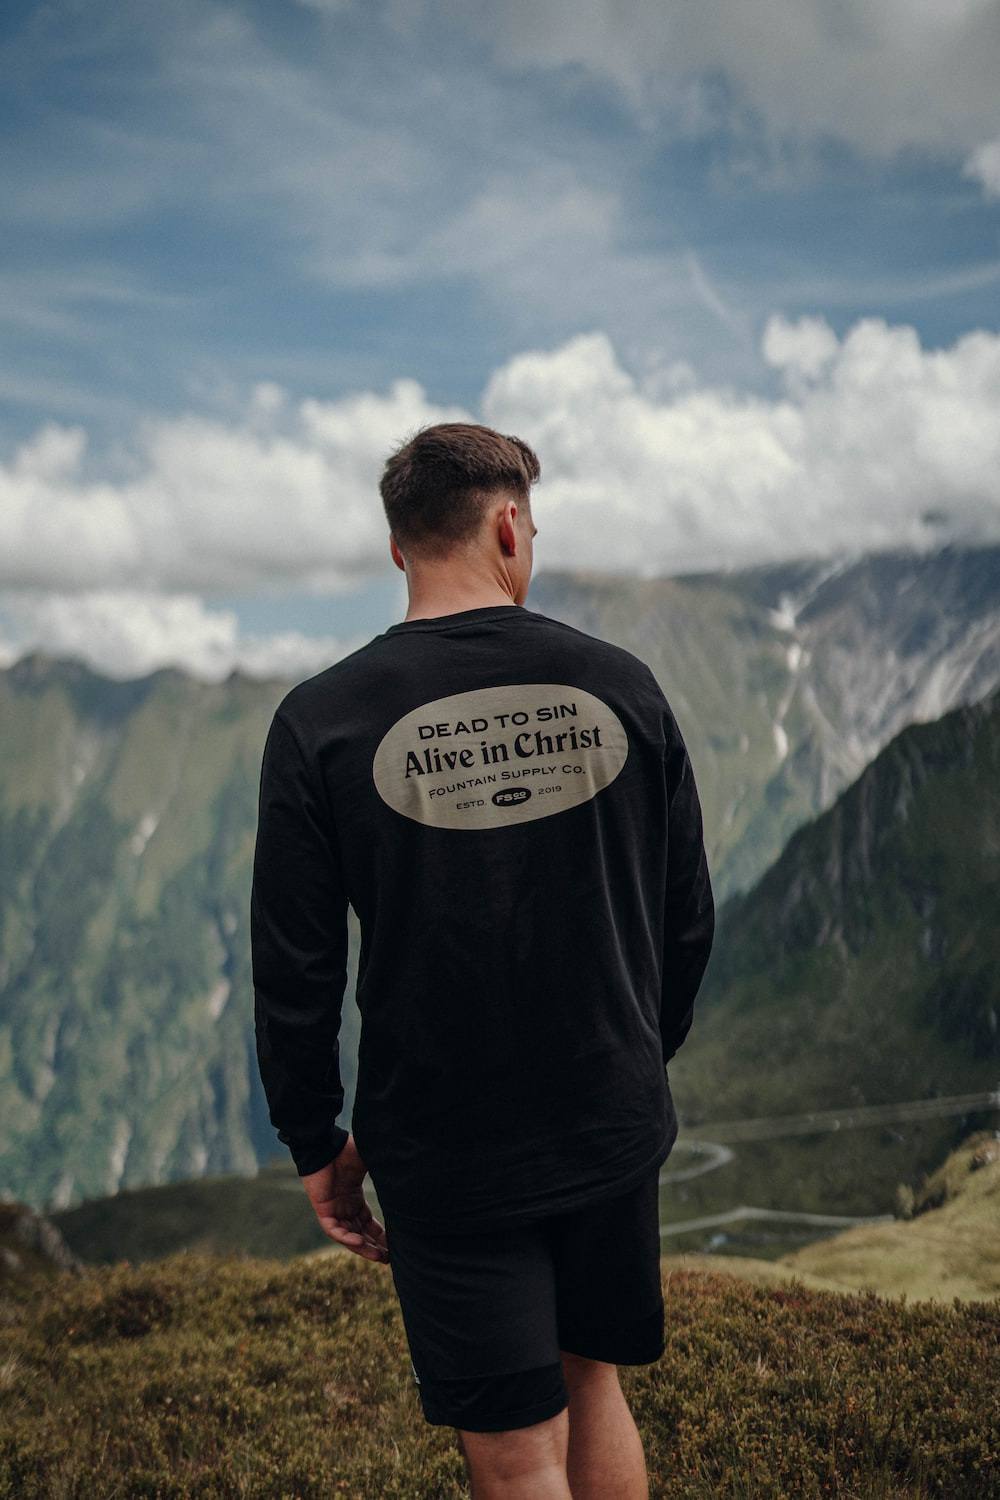 man in black and white long sleeve shirt standing on mountain under blue and white cloudy